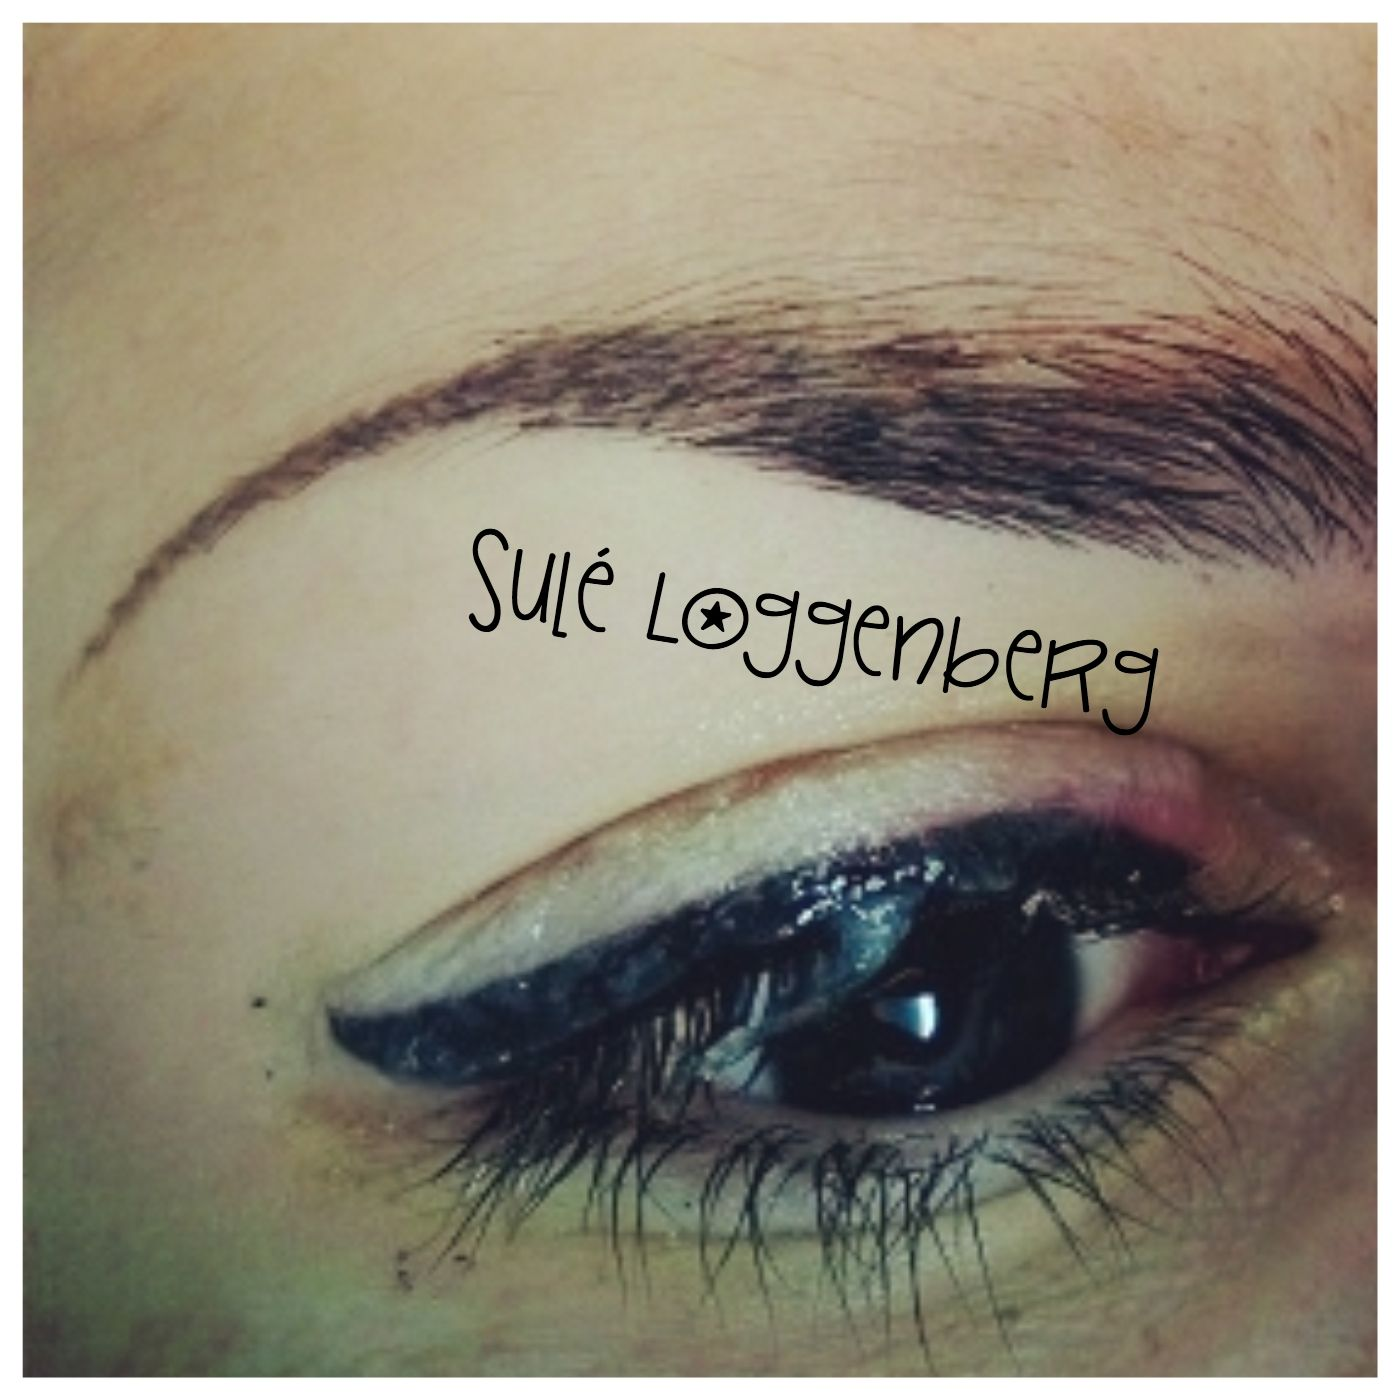 Permanent Liquid Eyeliner! & 3D effect at the end of the